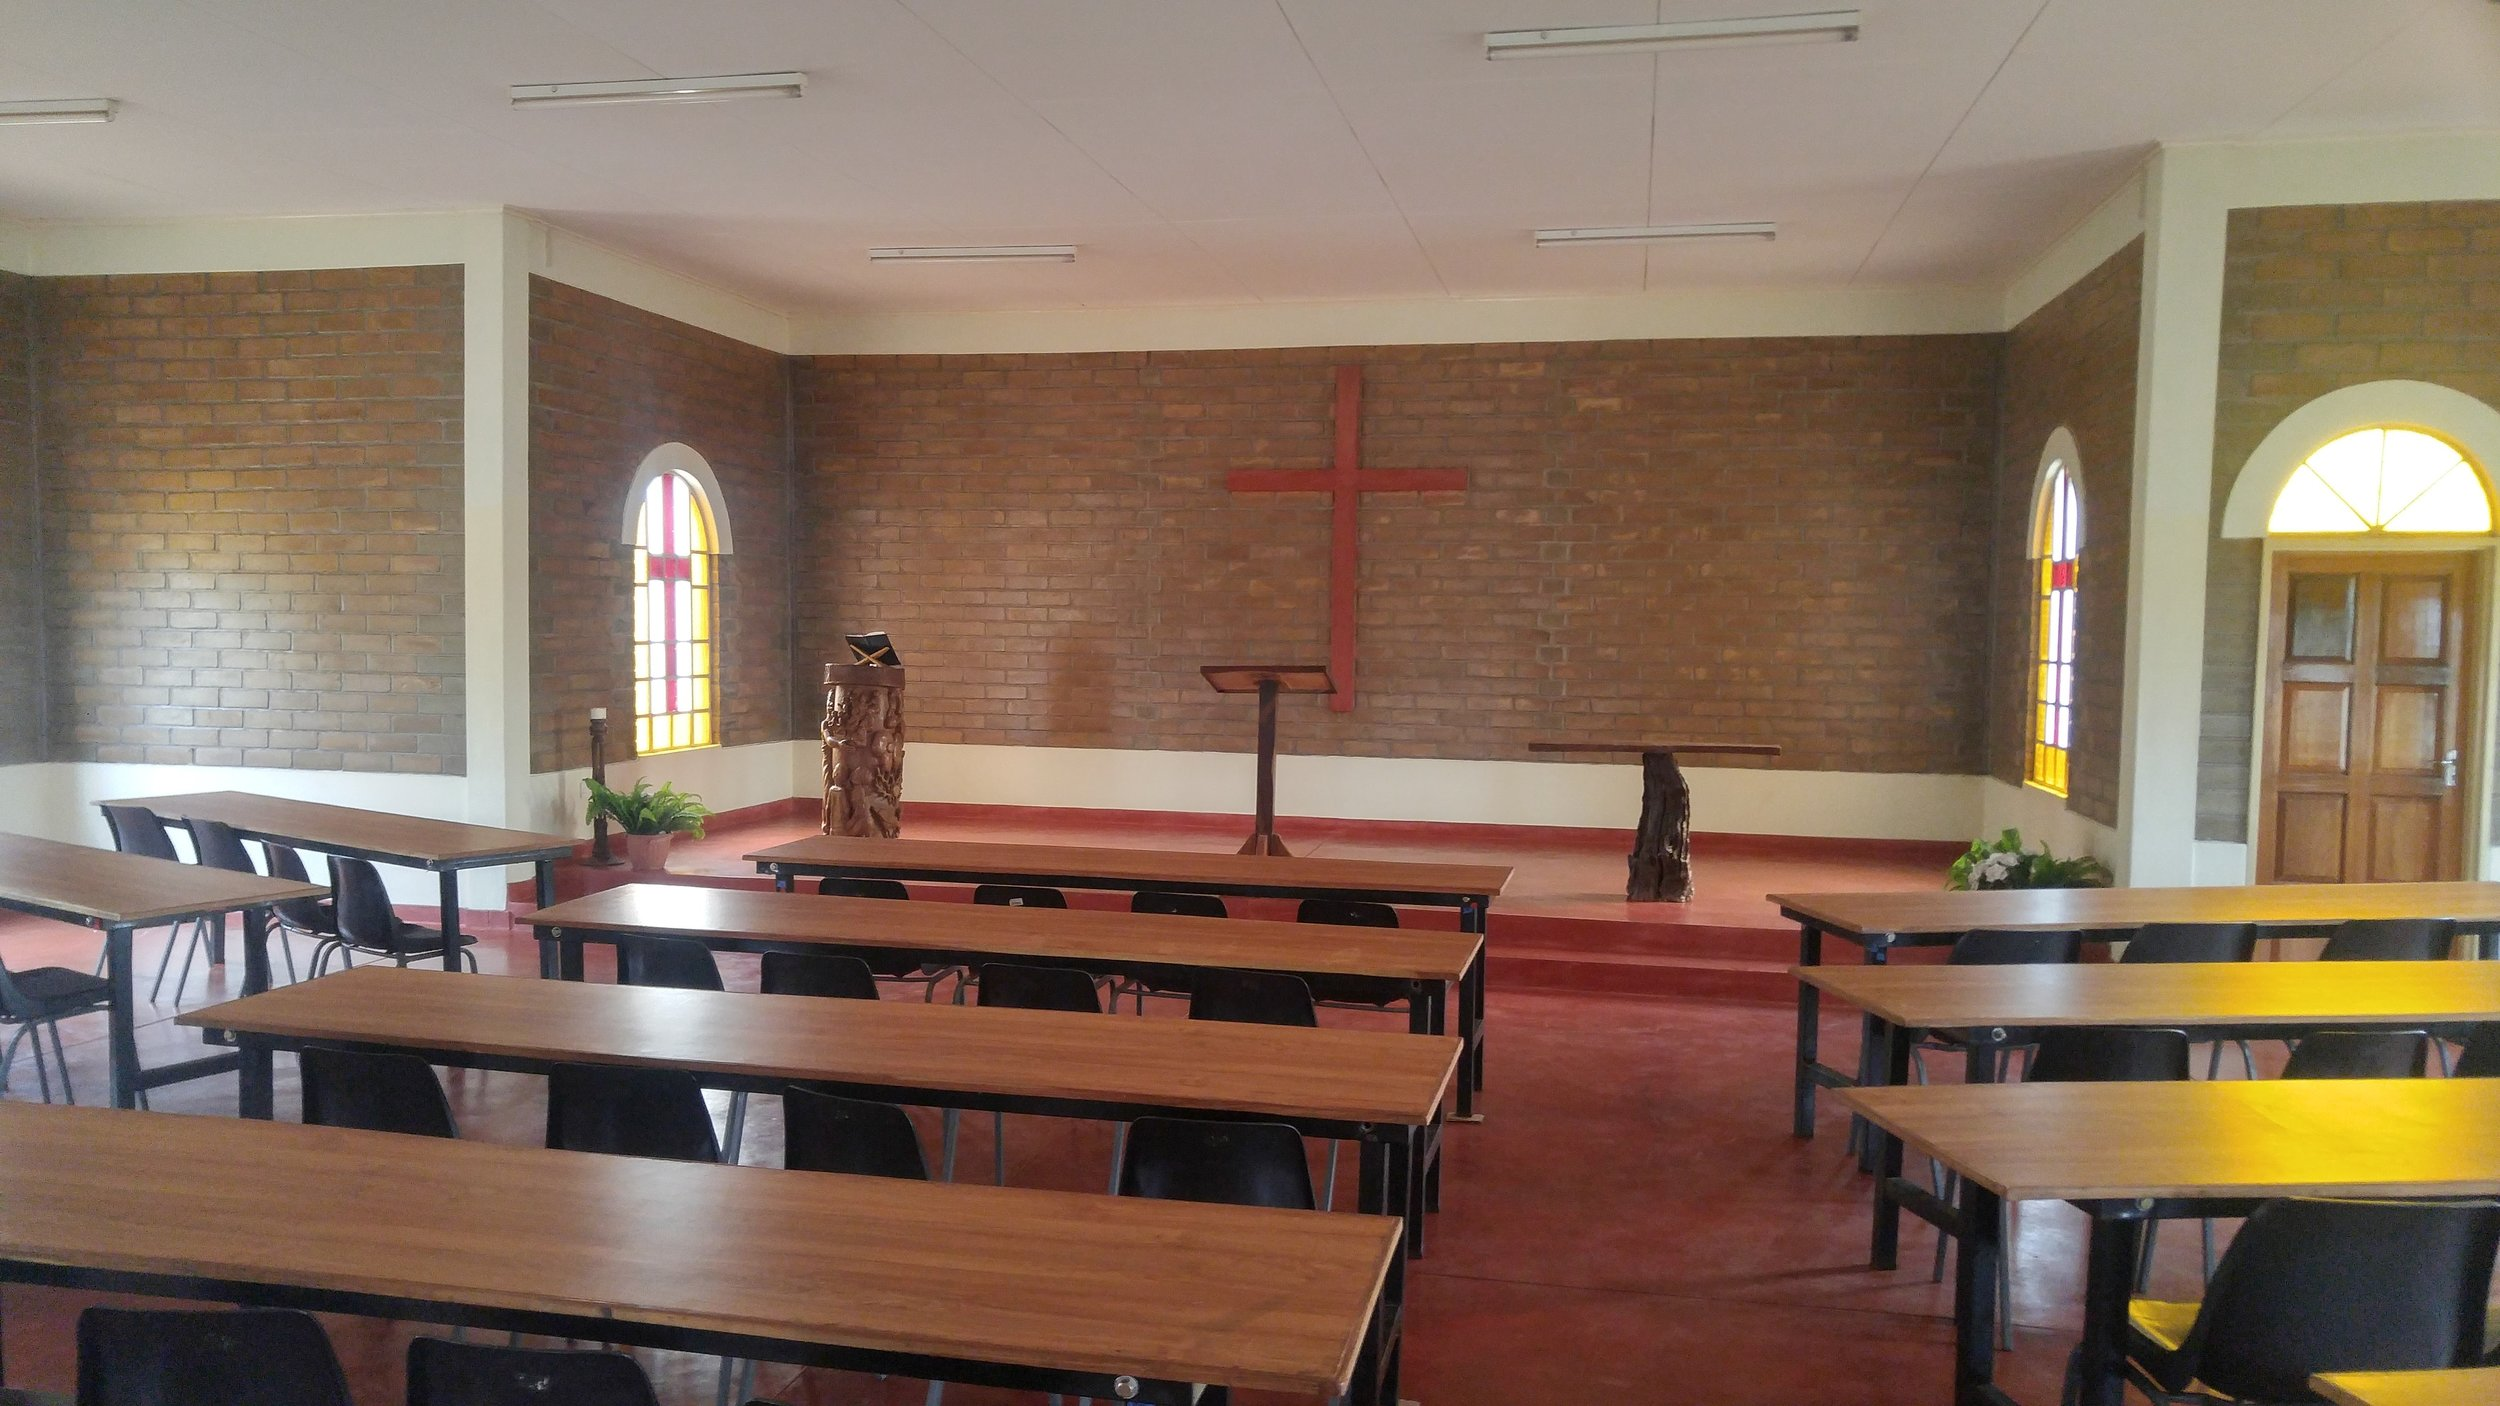 An empty chapel awaits students before school starts.